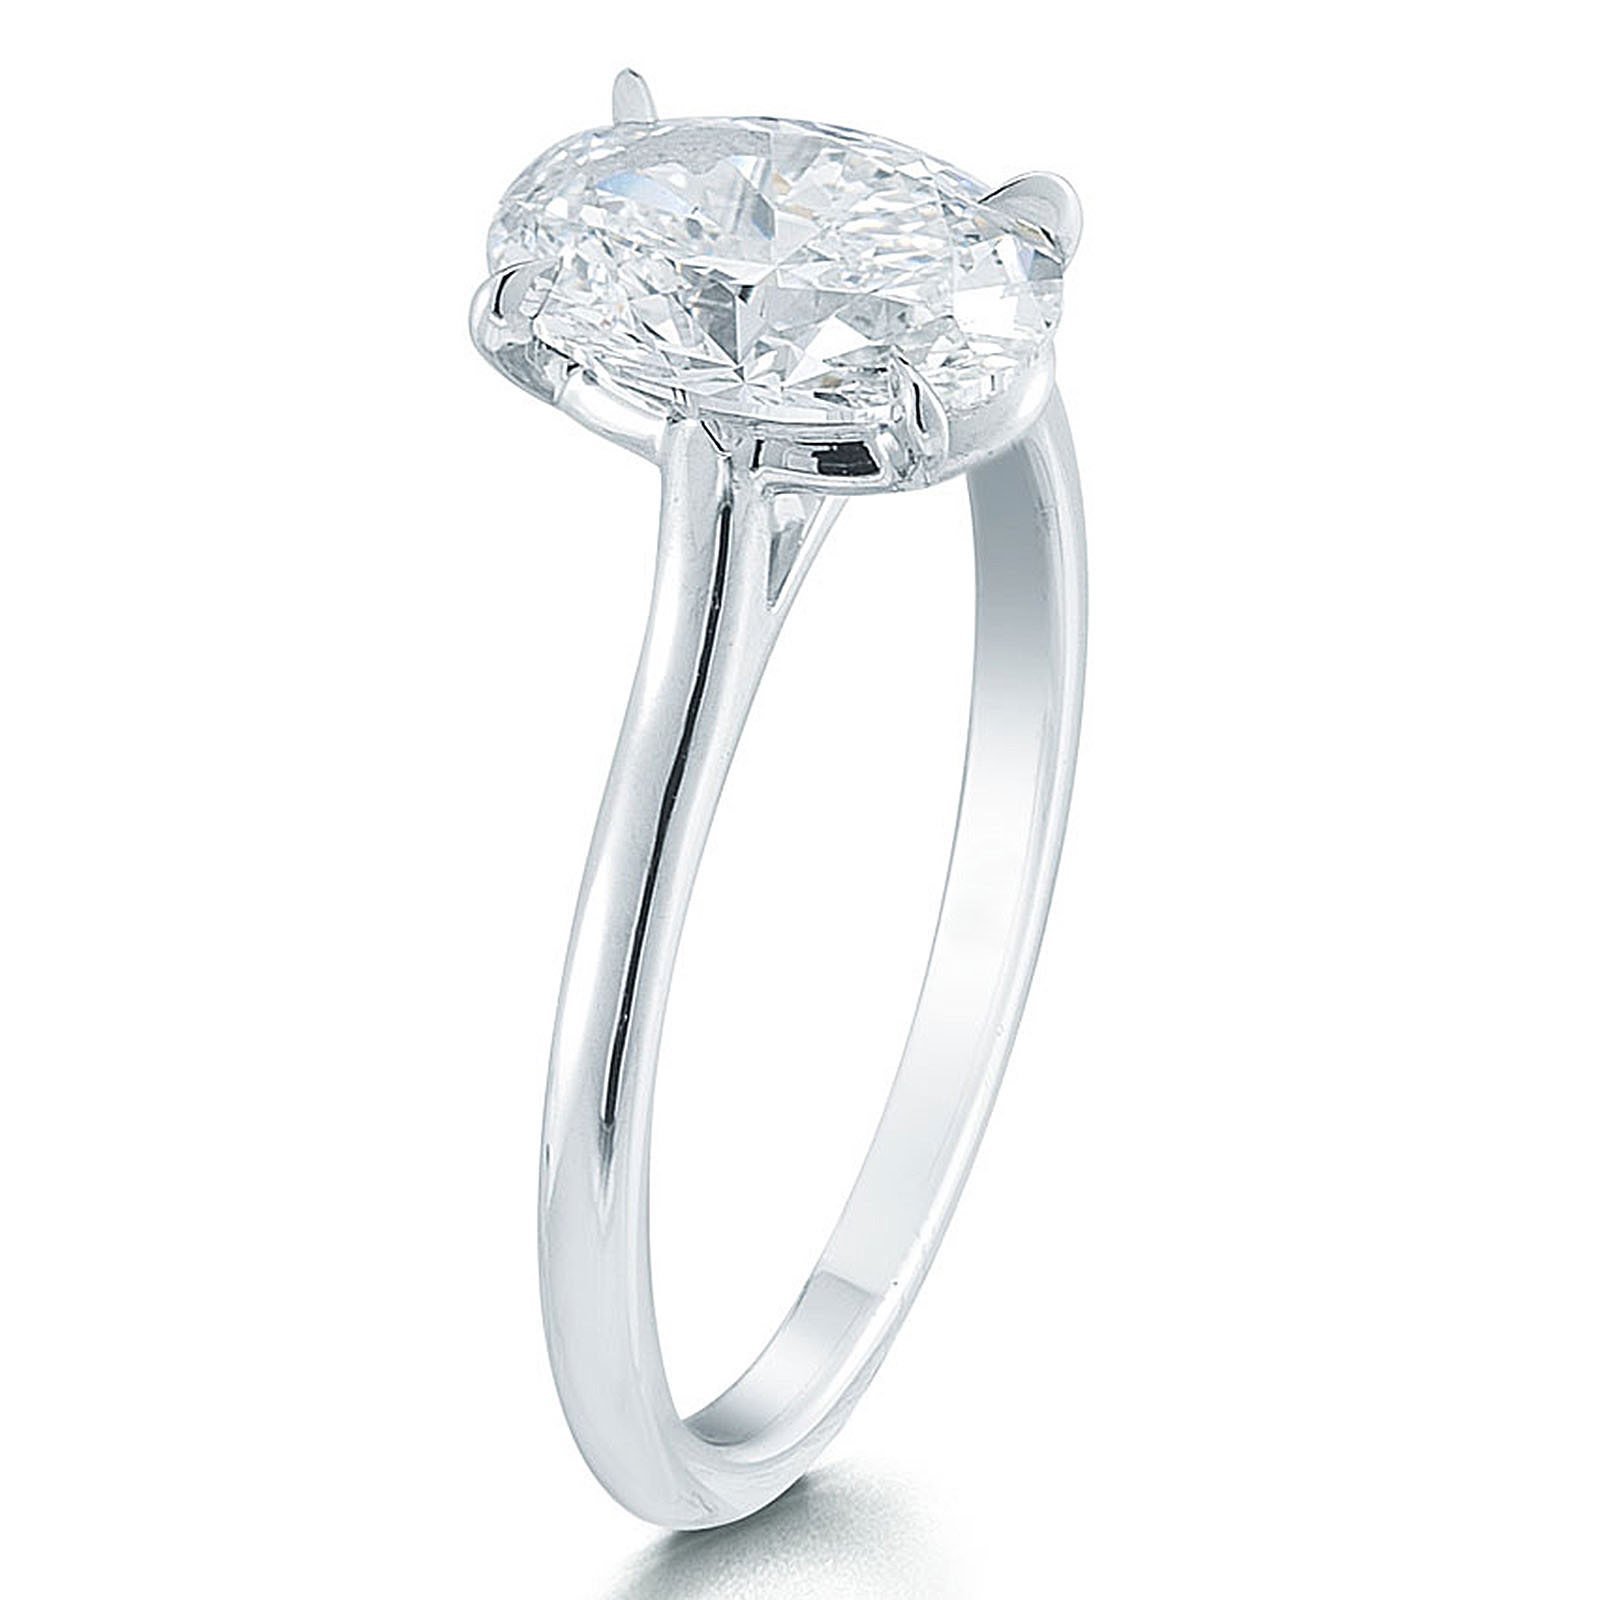 shop in false solitaire engagement subsampling cut the crop platinum engagment ring scale product cartier upscale princess